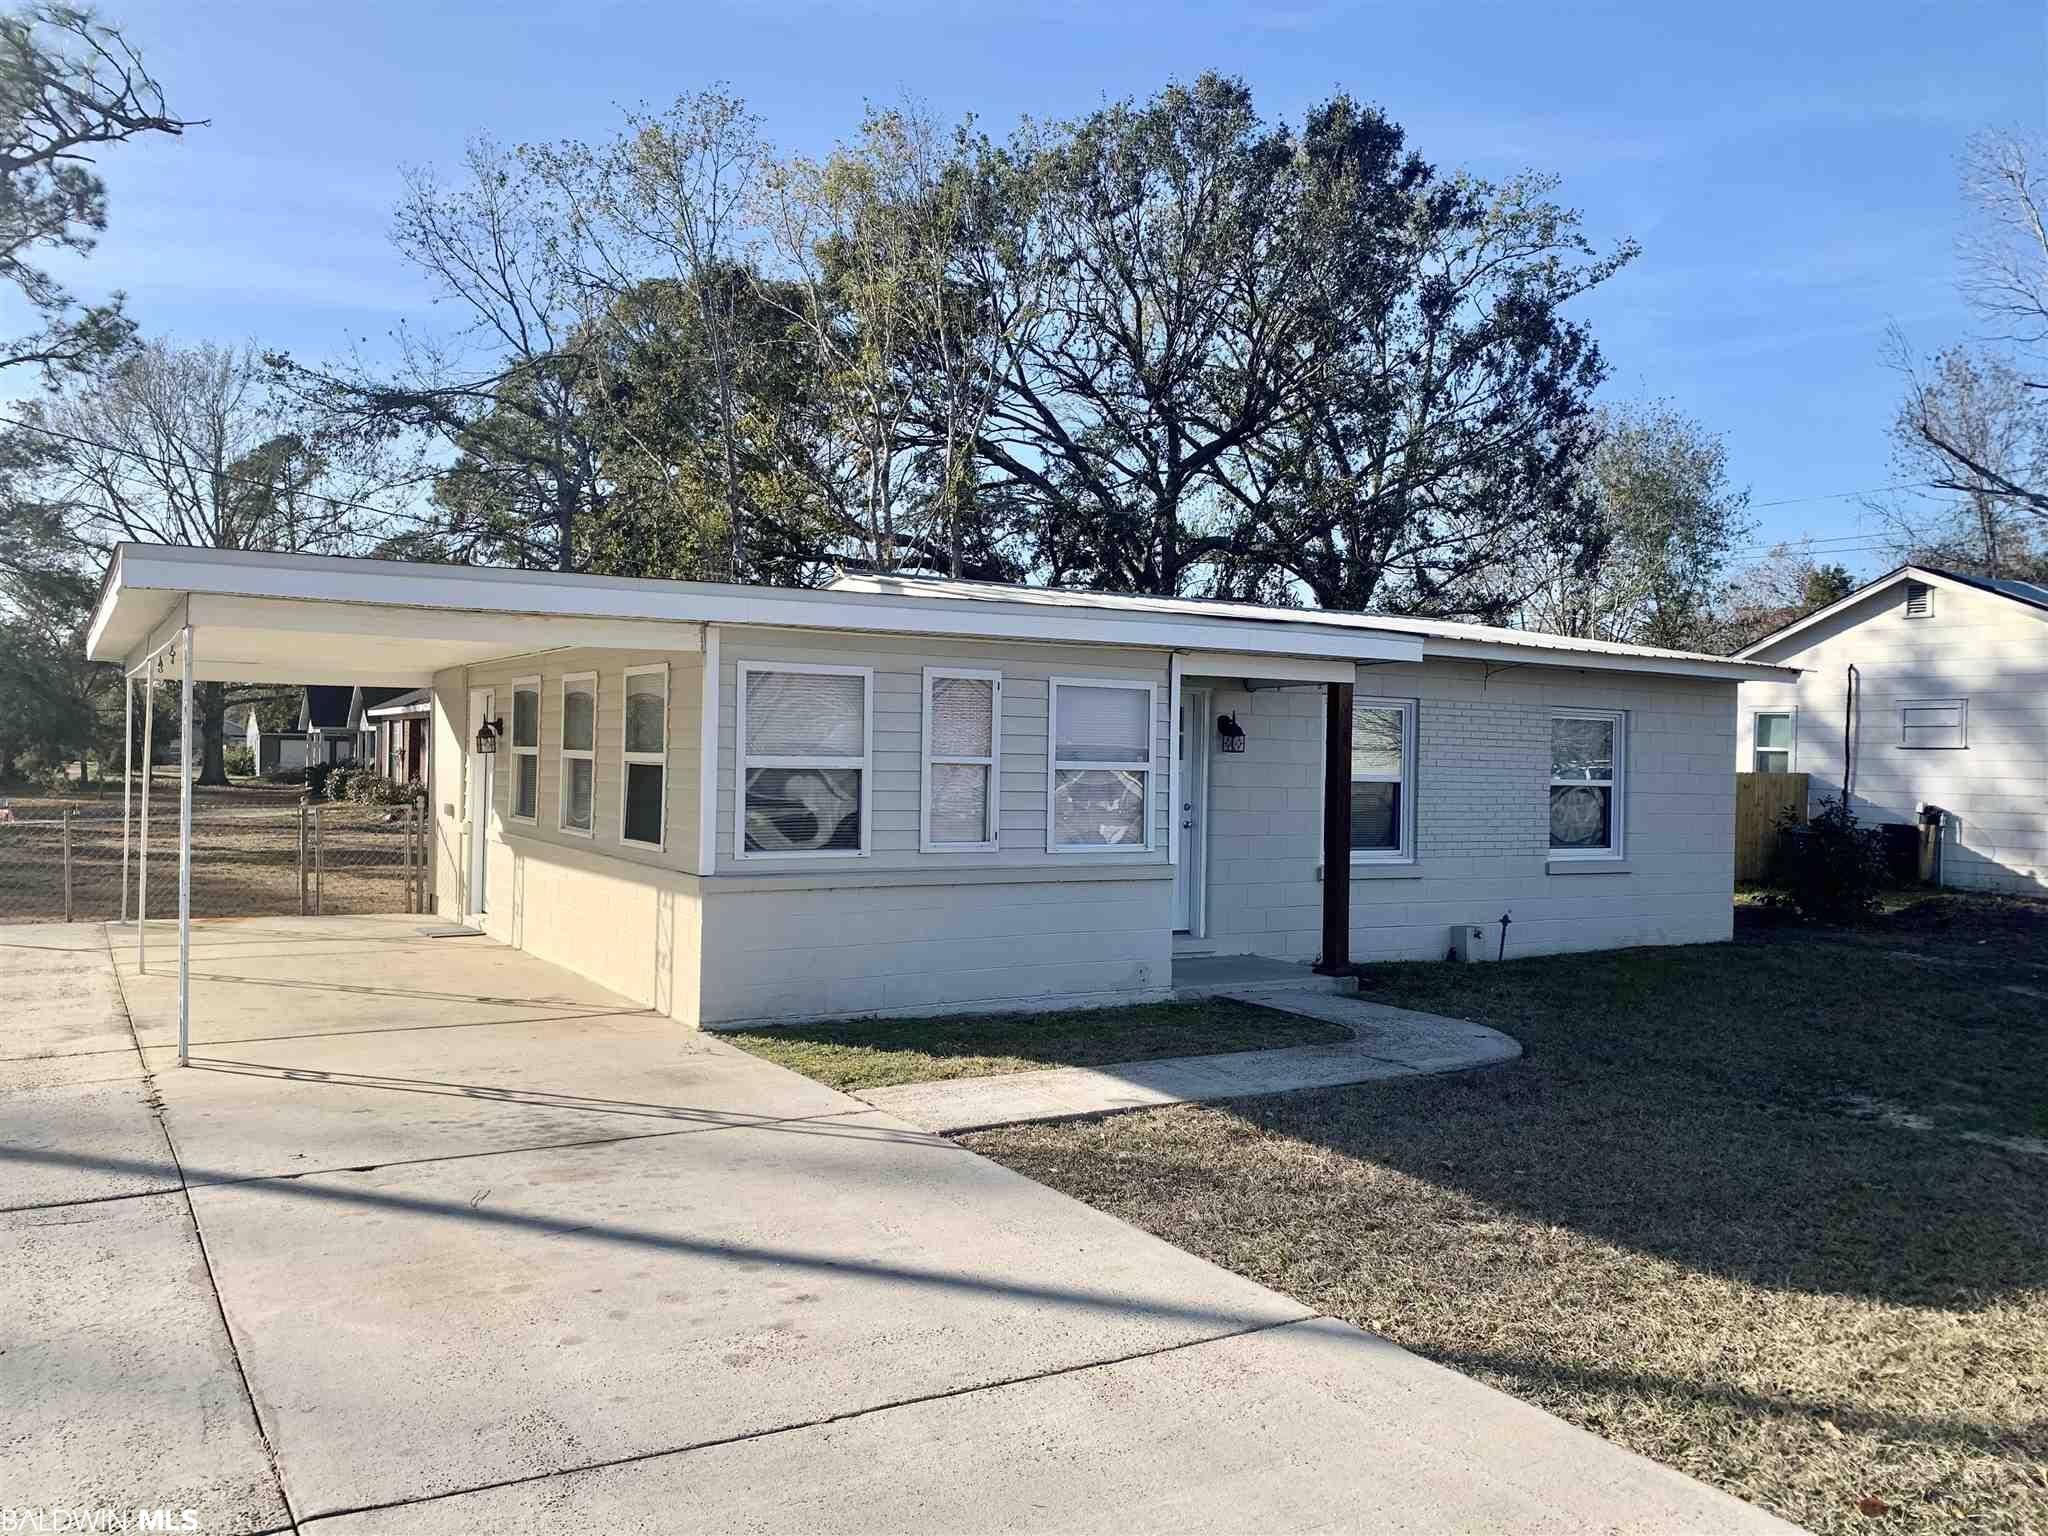 Investor's delight or Starter Home!  CLEAN 2BR/1BA plus Sunroom or 3rd BR with Closet!   Tile flooring throughout, updated Kitchen, HVAC 5 years old, Hot Water Heater 3 years old,  Metal Roof, Single attached Carport, Outside Storage building, new Sod on a Corner lot.   Refrigerator and Washer & Dryer convey.  This one will not last long!  Previously rented for $850/month.   All information provided is deemed reliable but not guaranteed. Buyer or buyer's agent to verify all information.